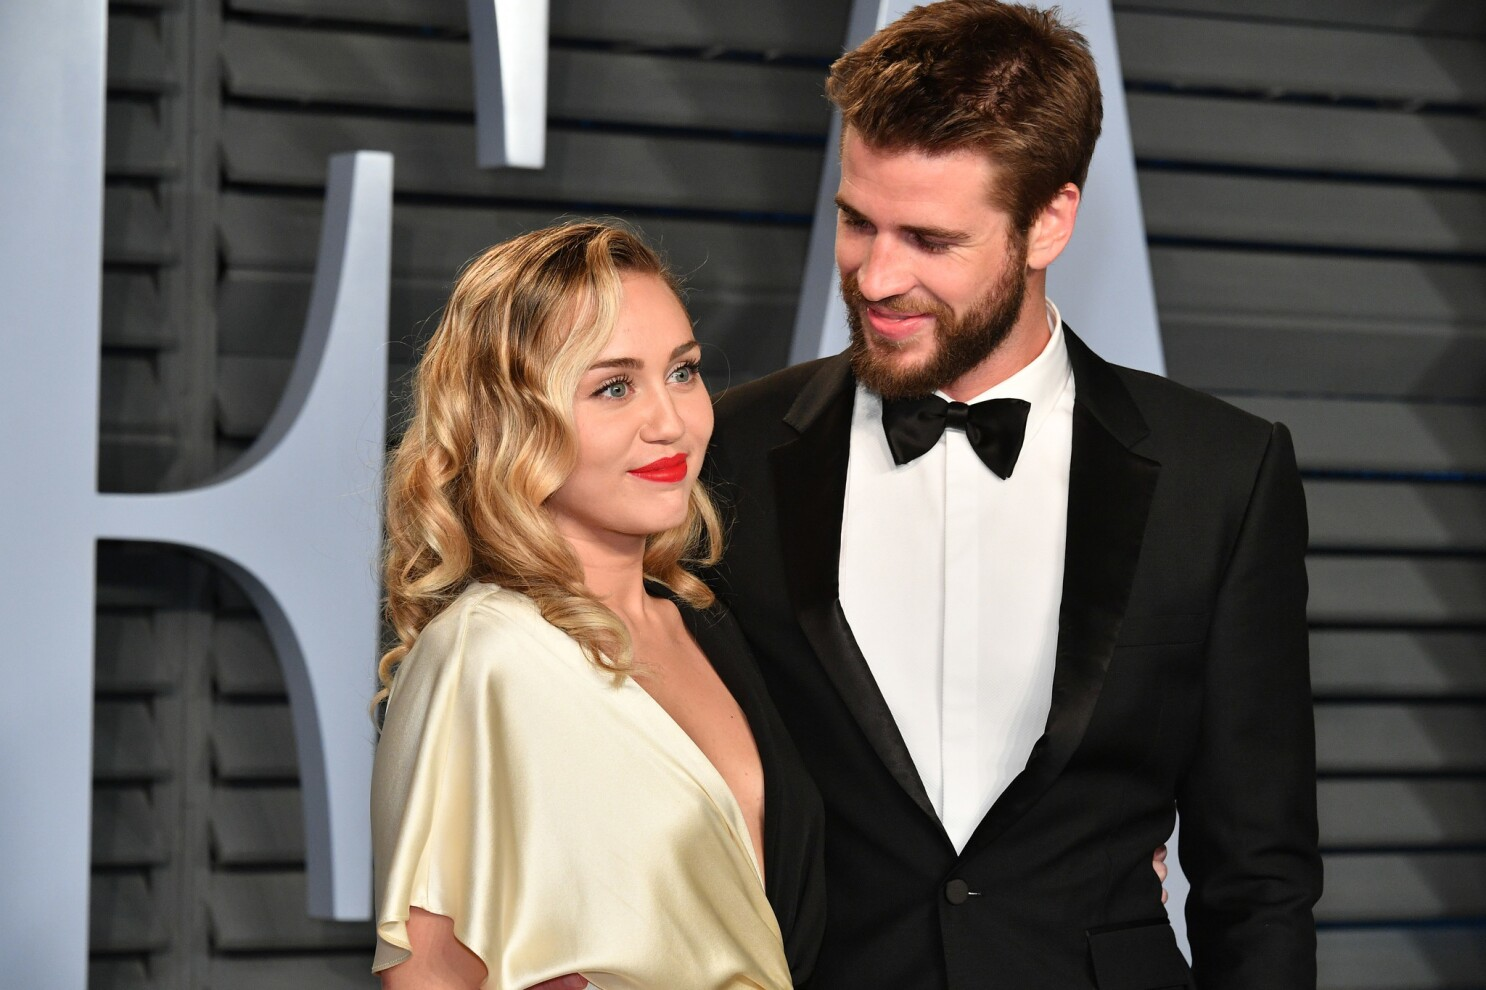 Miley Cyrus defends herself amid split from Liam Hemsworth